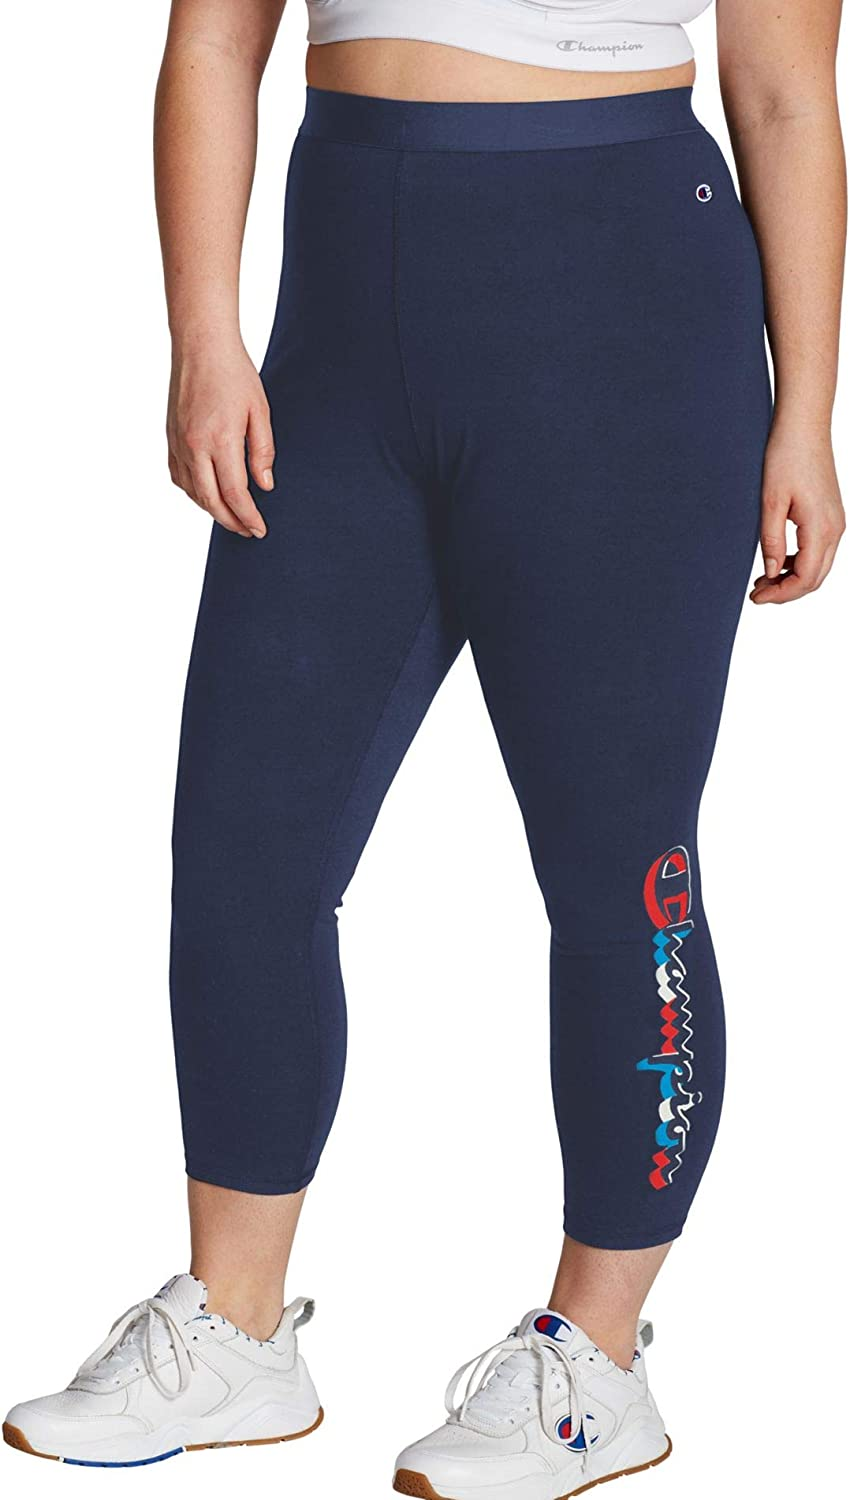 Champion Women S Plus Size Authentic 7 8 Legging Athletic Navy W Script 4x Large At Amazon Women S Clothing Store